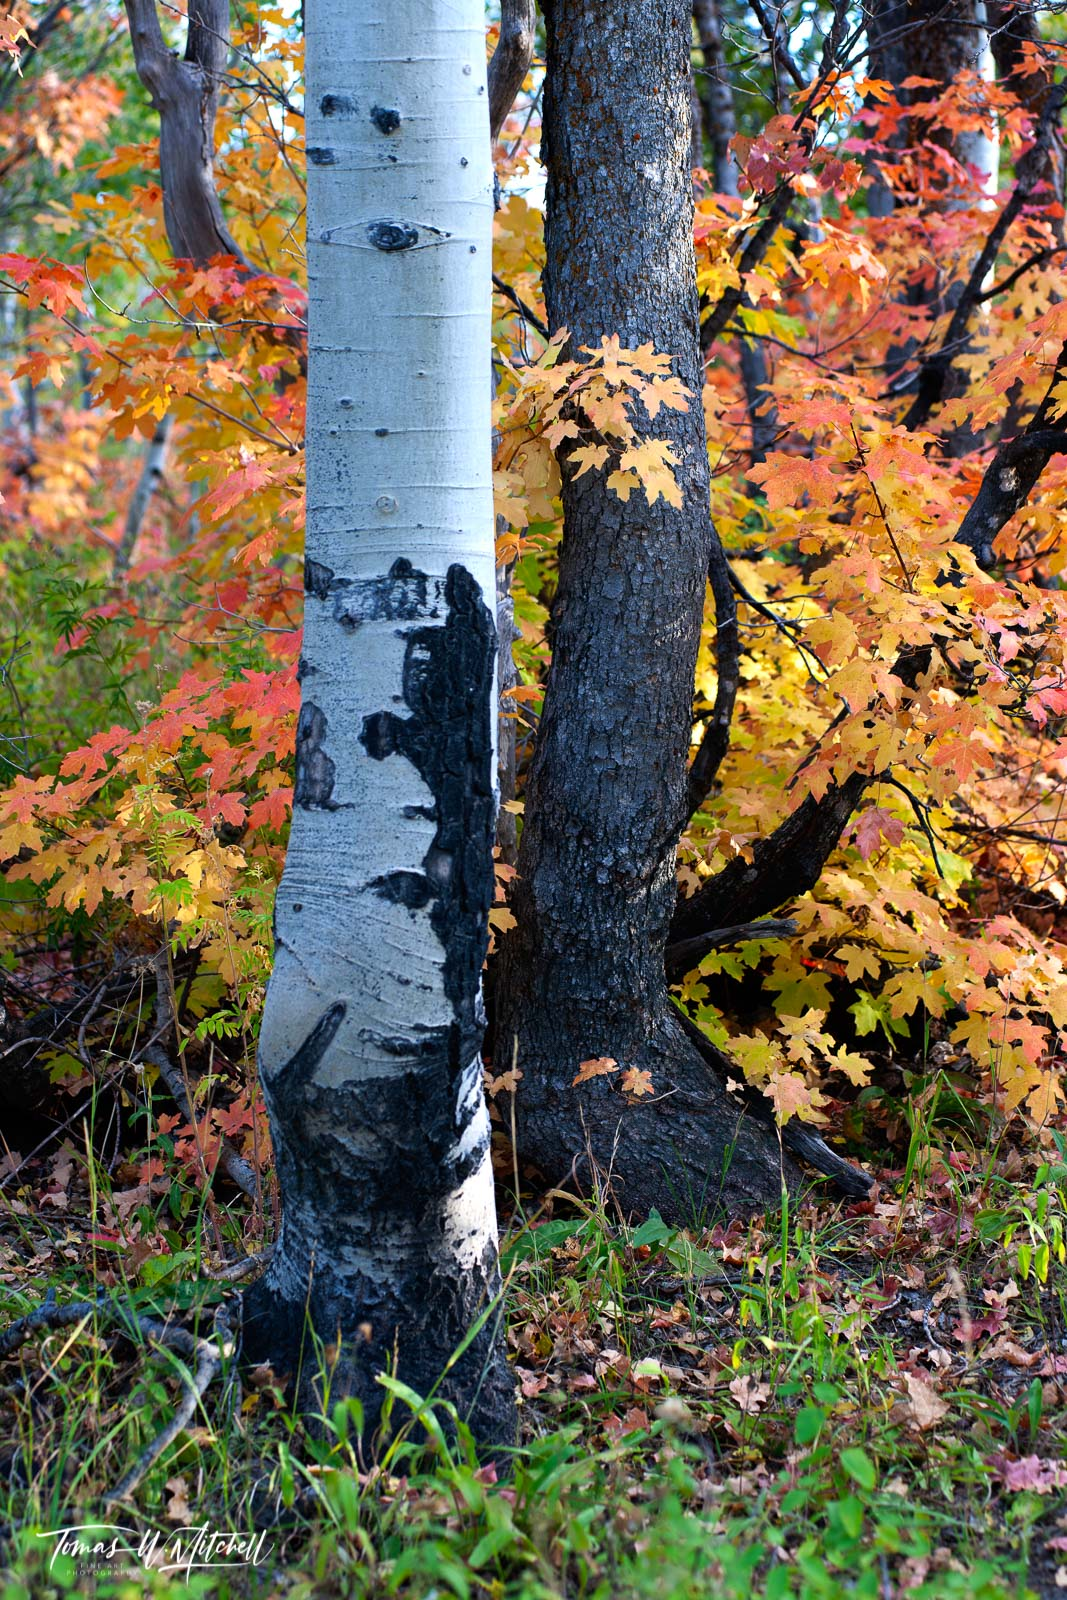 limited edition, museum grade, fine art, prints, forest, alpine loop, utah, tree, red, yellow, orange, maple, branch, amber, leaves, autumn, photo